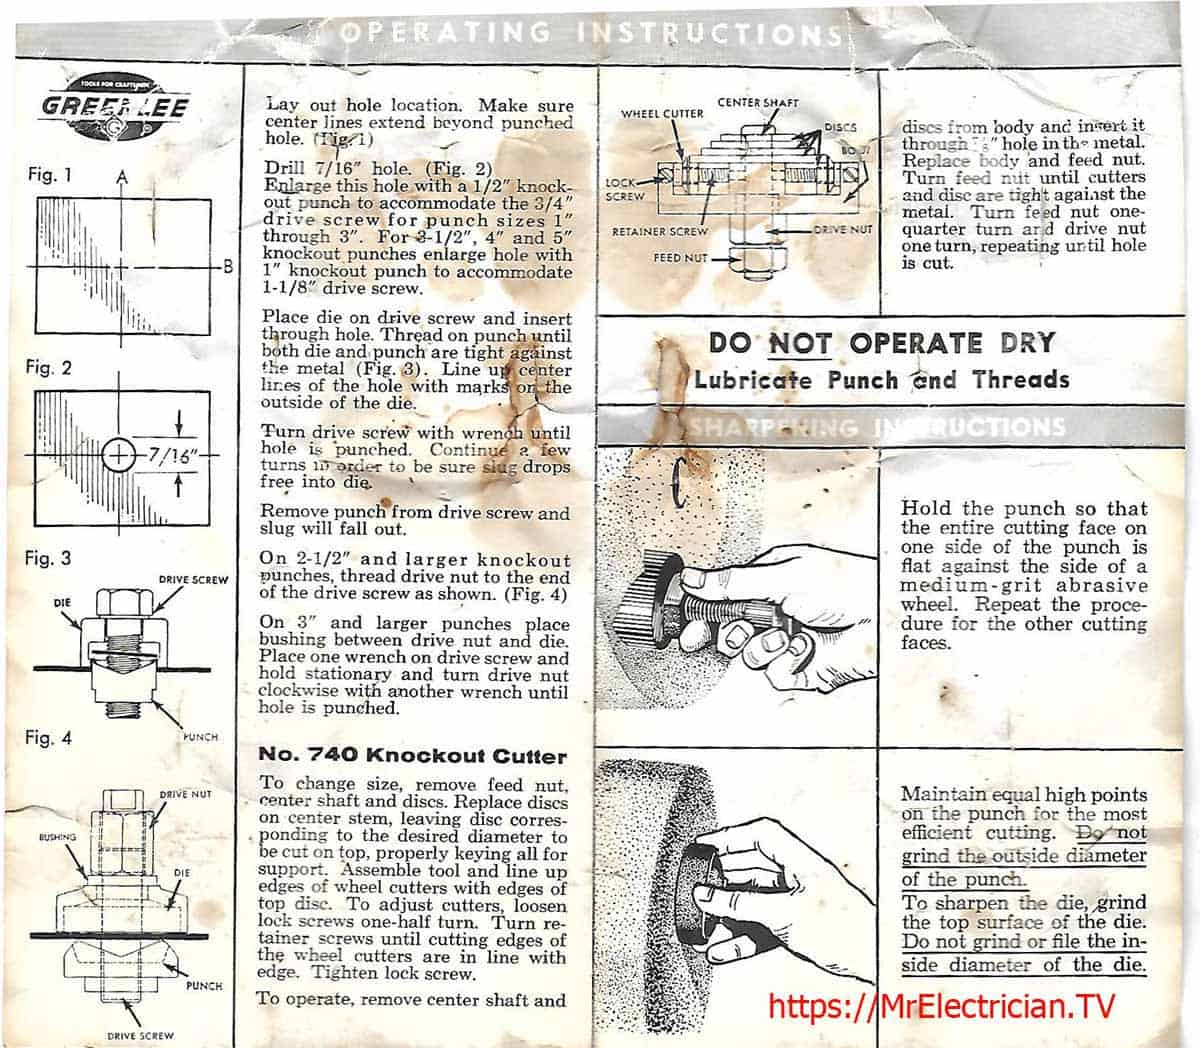 A section of an old operating manual for Greenlee hand knockout punches